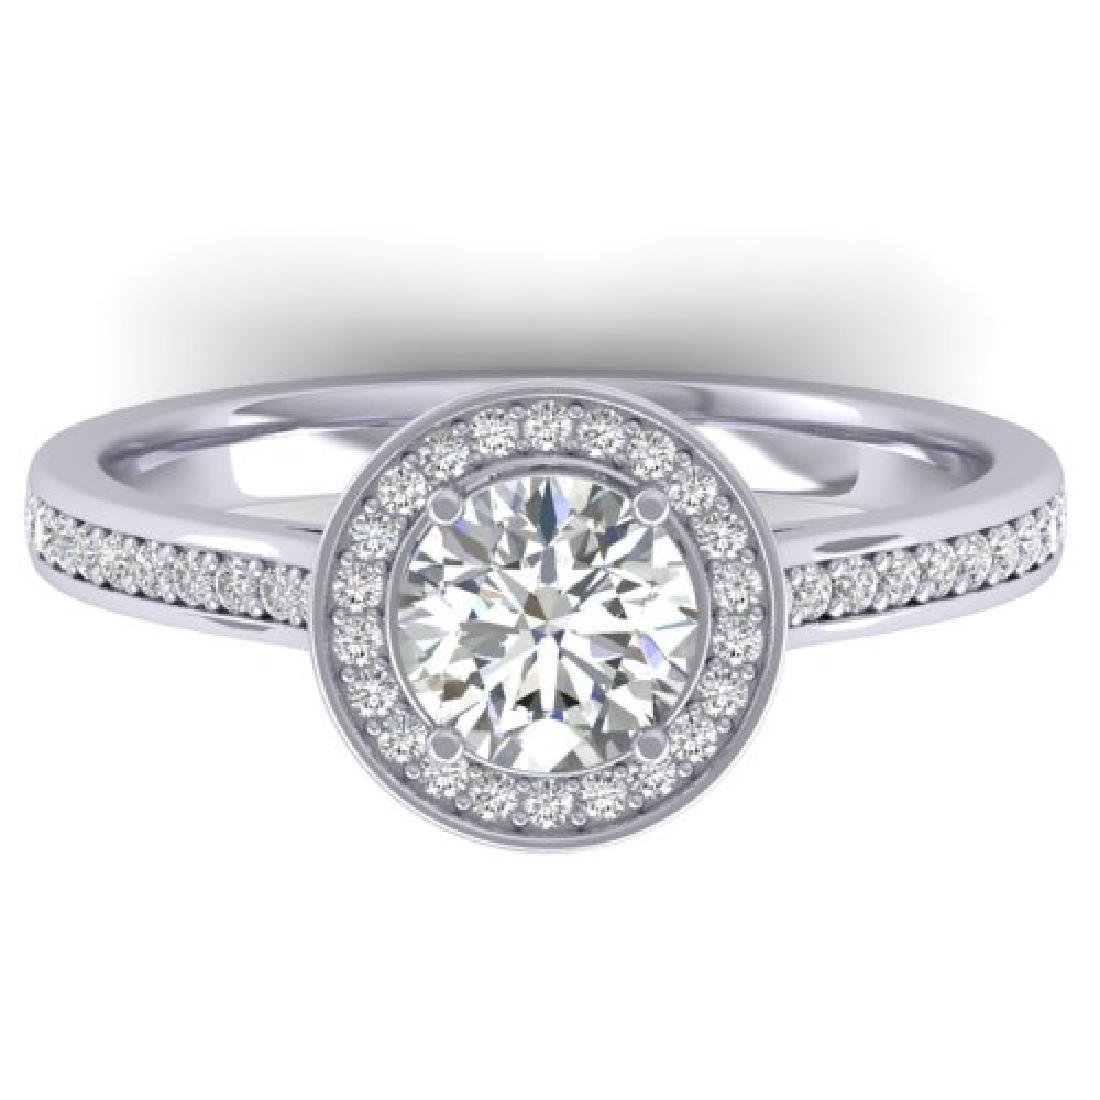 1.1 CTW Certified VS/SI Diamond Solitaire Micro Halo